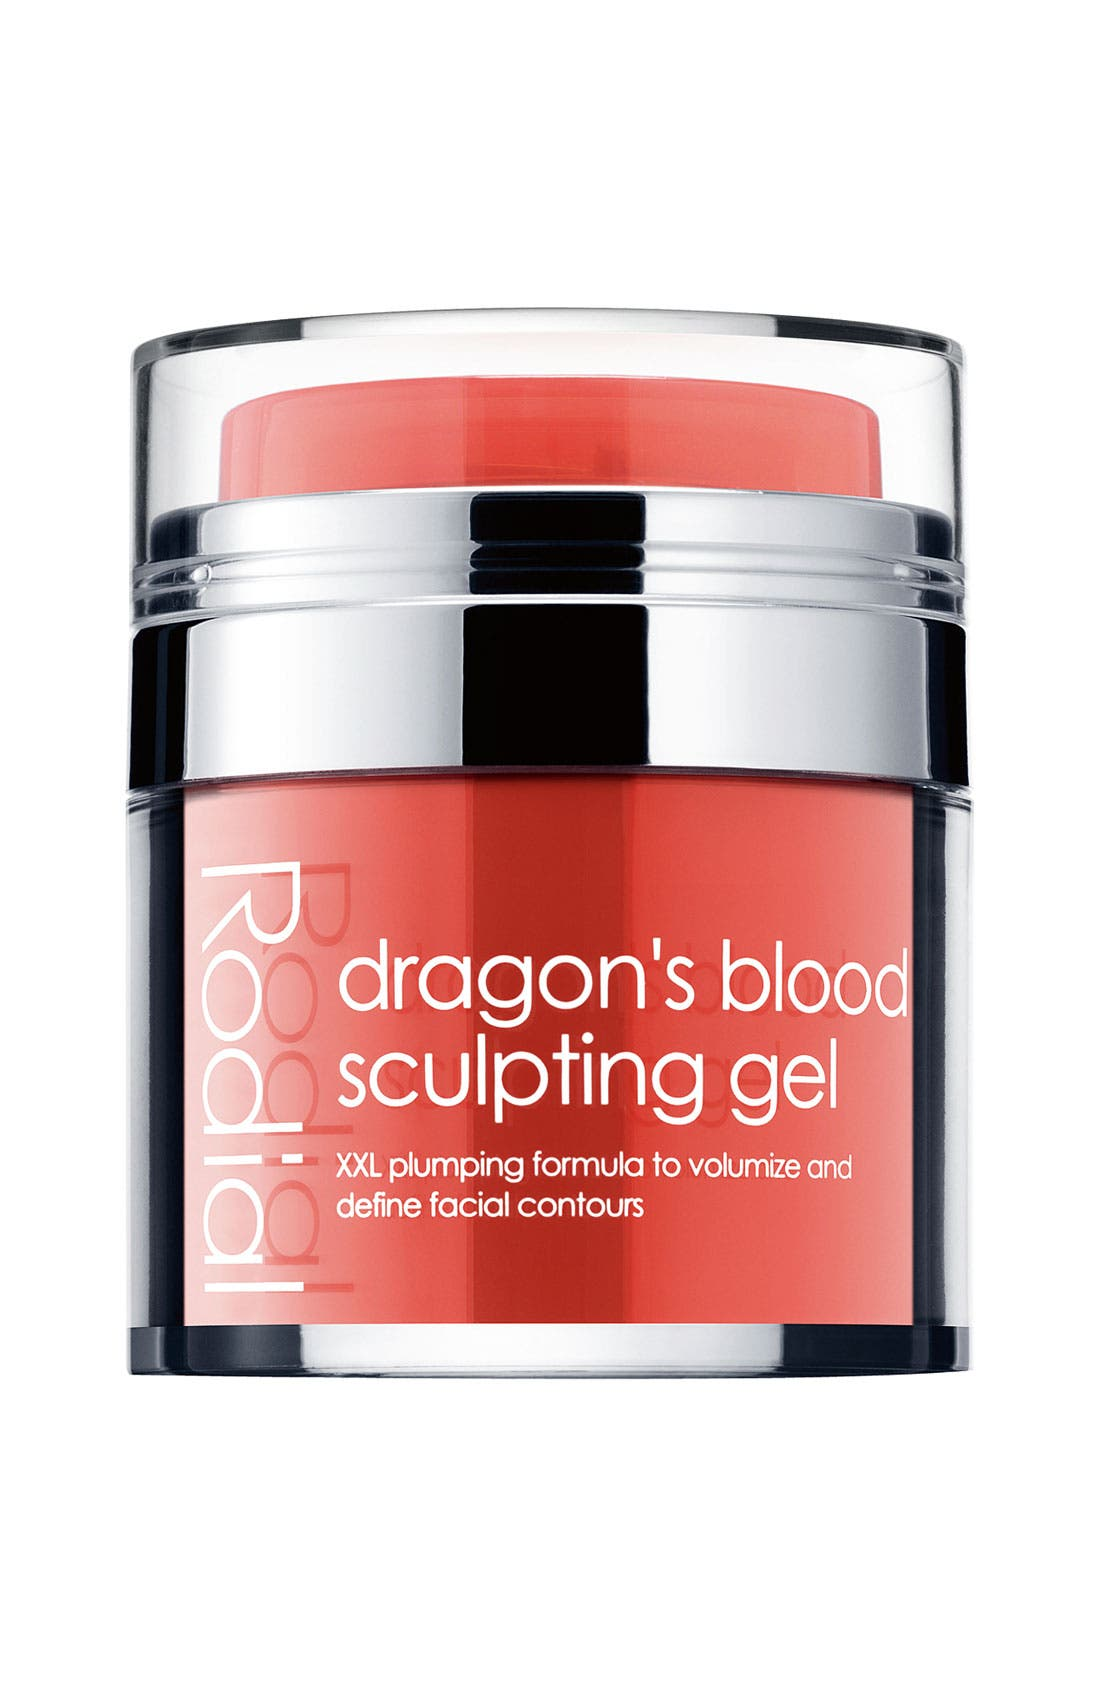 Rodial 'Dragon's Blood' Sculpting Gel